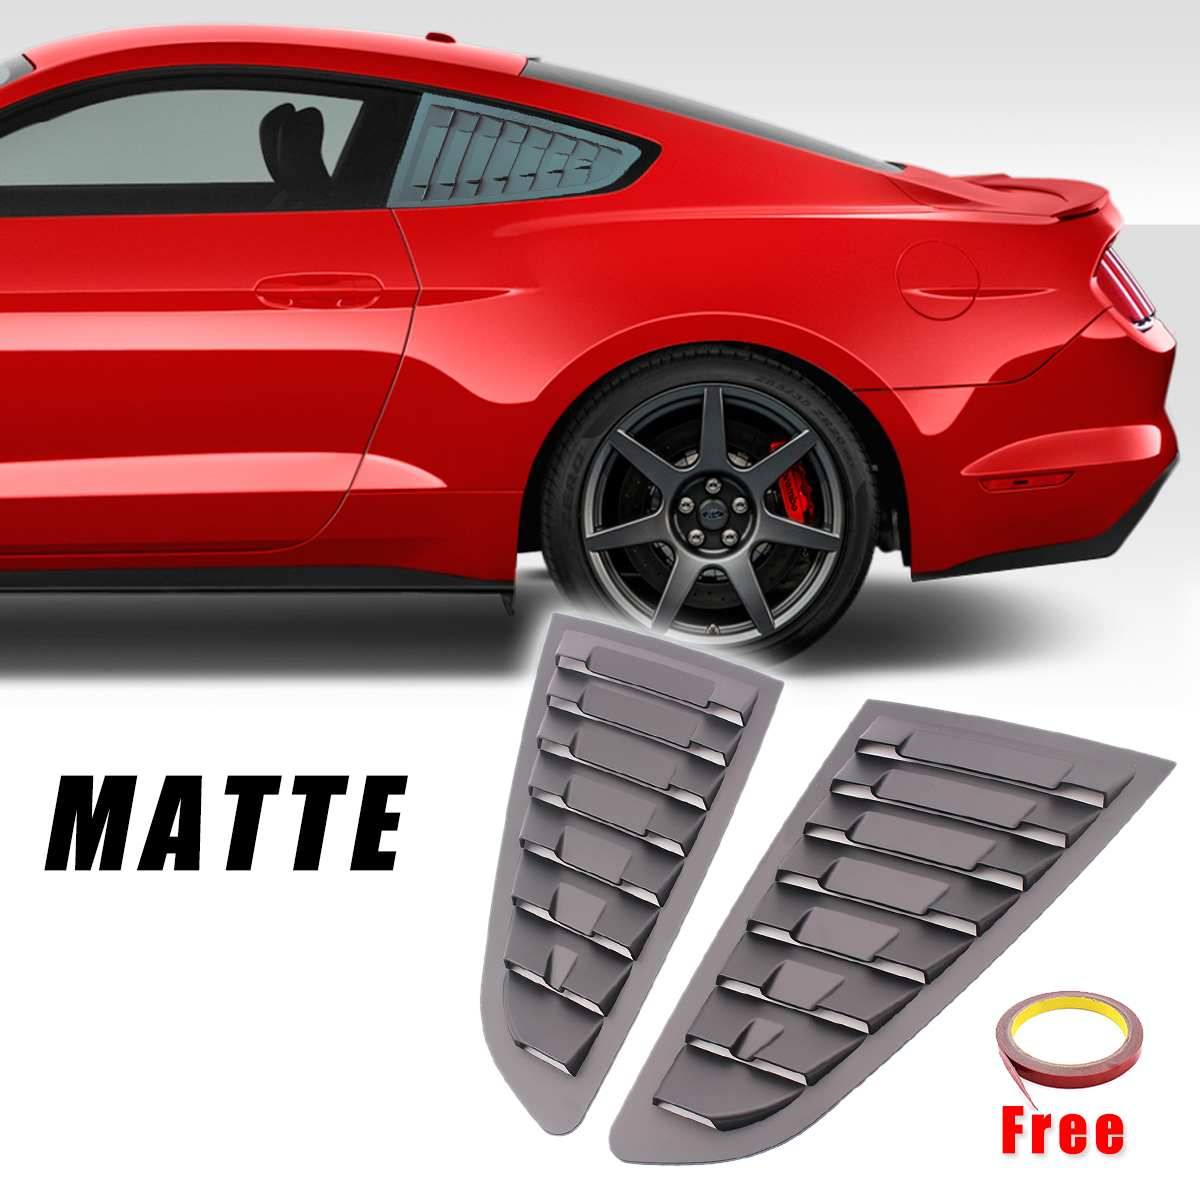 2Pcs ABS Matte Black Rear Quarter Panel Window Side Vent Louvers Shield Sticker For <font><b>Ford</b></font> For <font><b>Mustang</b></font> <font><b>2015</b></font> 2016 2017 2018 2019 image